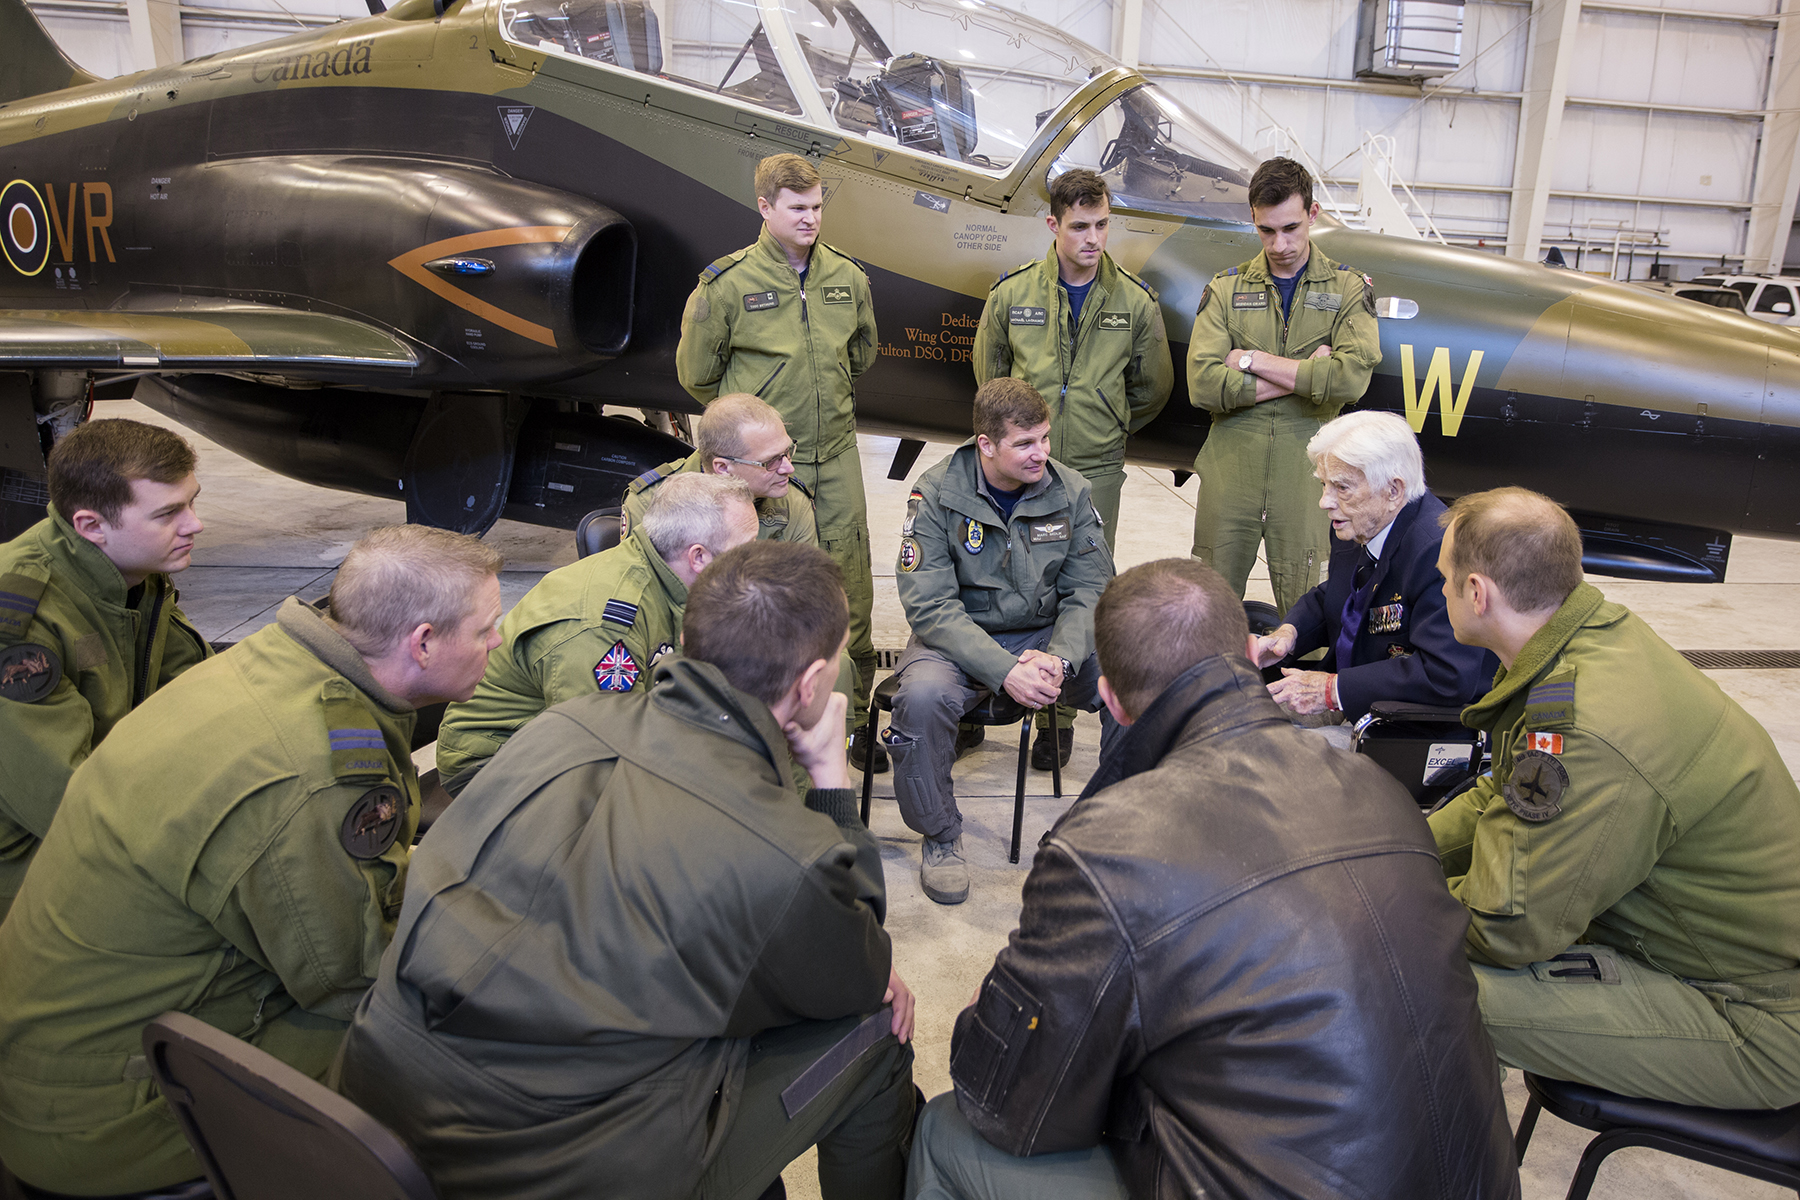 A white-haired man in a suit sits facing a group of men in olive green uniforms or casual clothing beside a small aircraft.